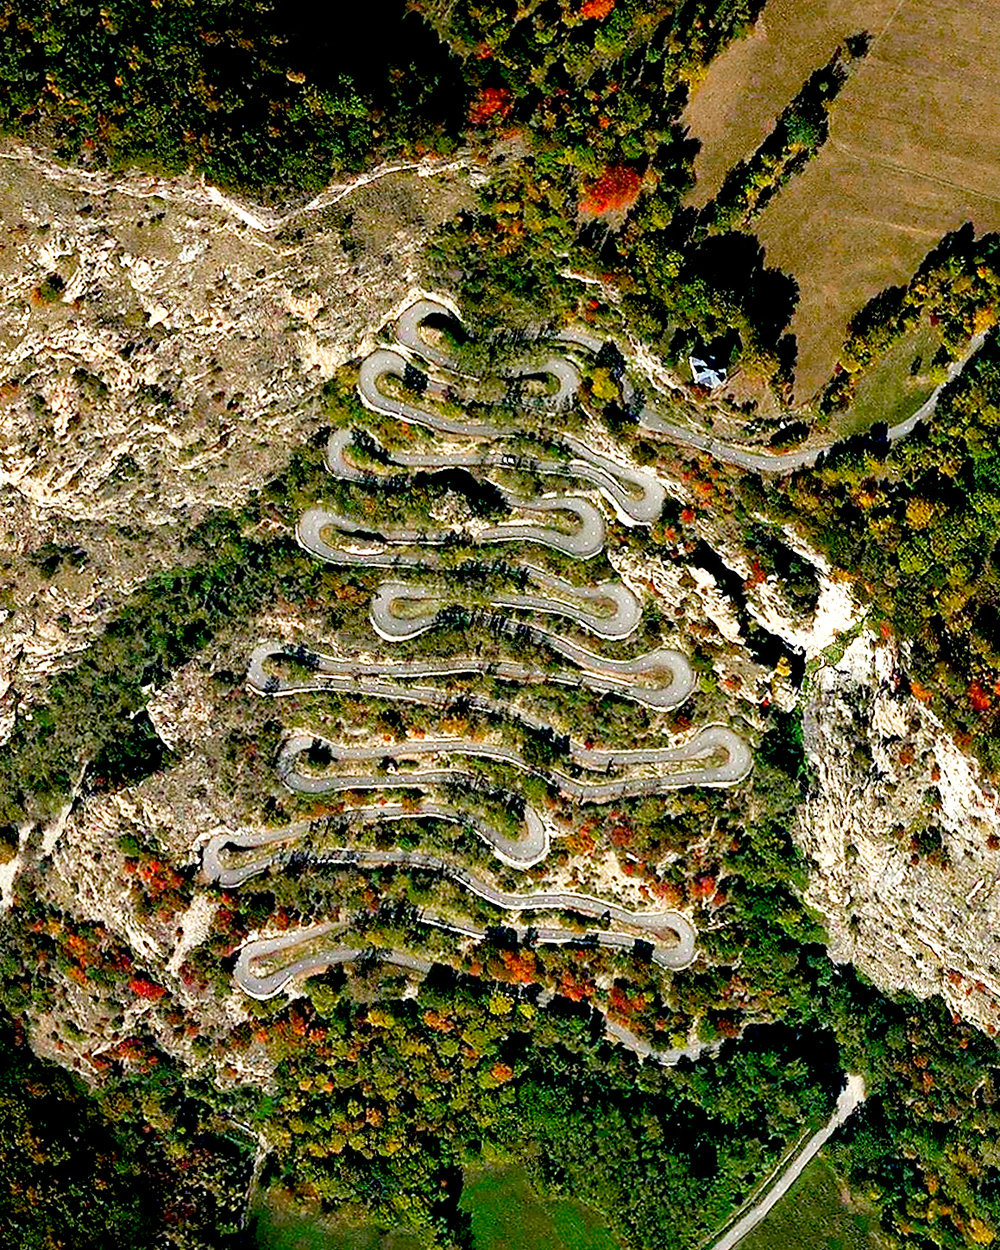 "On Thursday, cyclists racing in the Tour de France completed Stage 12 of the race, passing through the 18 hairpin turns of the Lacets de Montvernier in Montvernier, France. This spectacular climb is 2.1 miles long (3.4 km) and contains a switchback turn every 450 feet (150 m). Welsh cyclist Geraint Thomas, racing for Team Sky, won this stage in just under five hours and 20 minutes.  45°19'03.4""N, 6°20'14.6""E  Source imagery: DigitalGlobe"